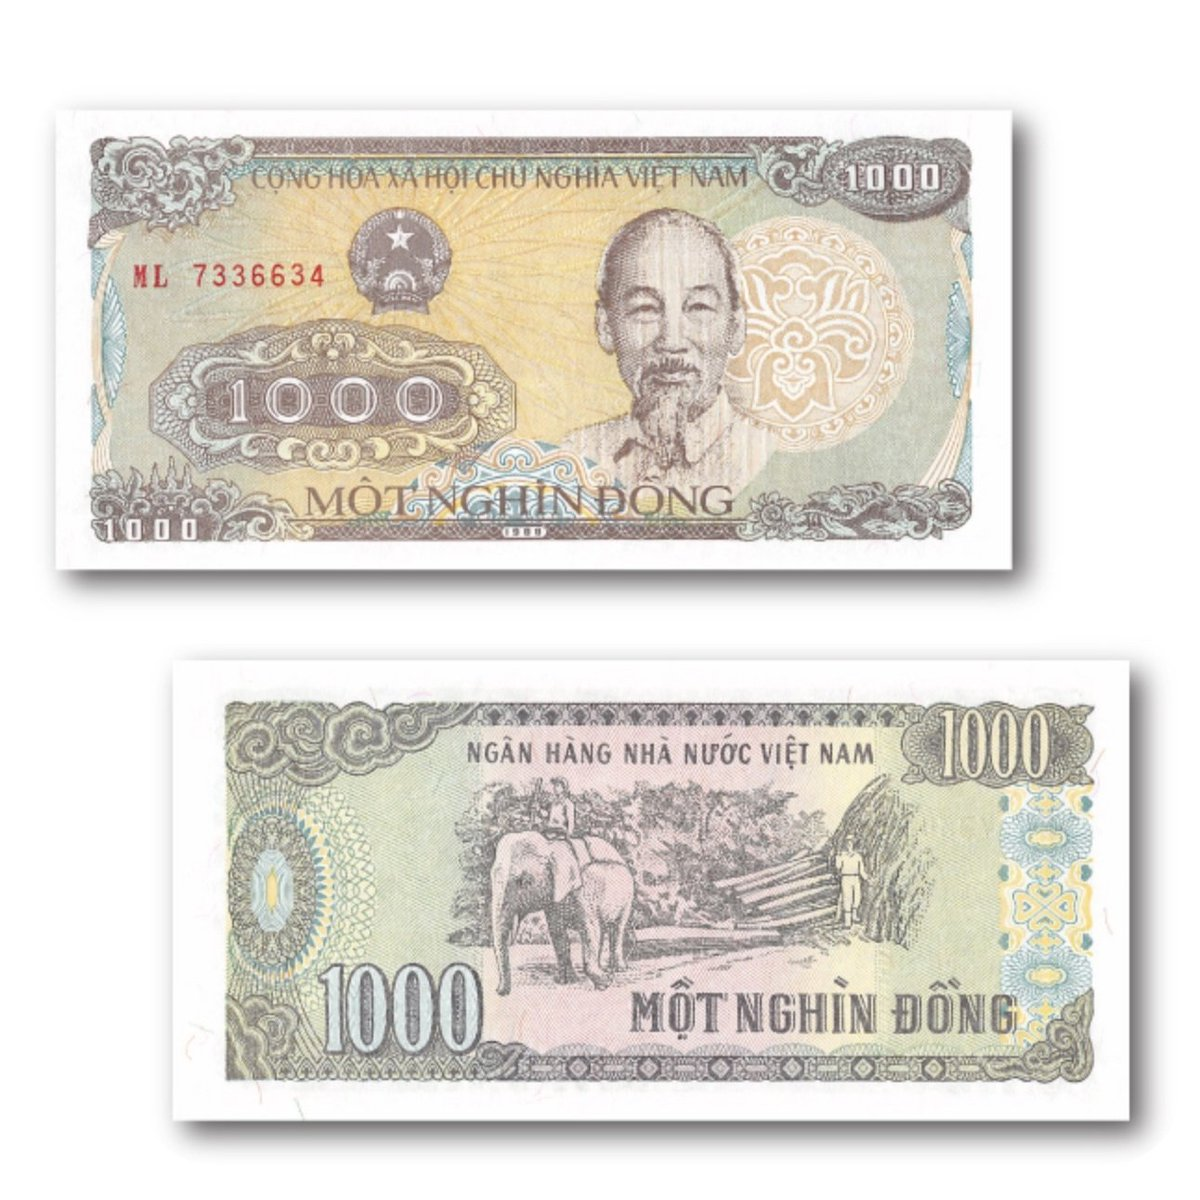 Vietnam is a Southeast Asian country with a very unique past. Here we have 1,000 Dong from 1988. On the obverse is a portrait of former leader Ho Chi Minh. On the reverse there is an image of a mahout riding his elephant. https://bit.ly/3cjz33spic.twitter.com/I1eNXmw5Y6